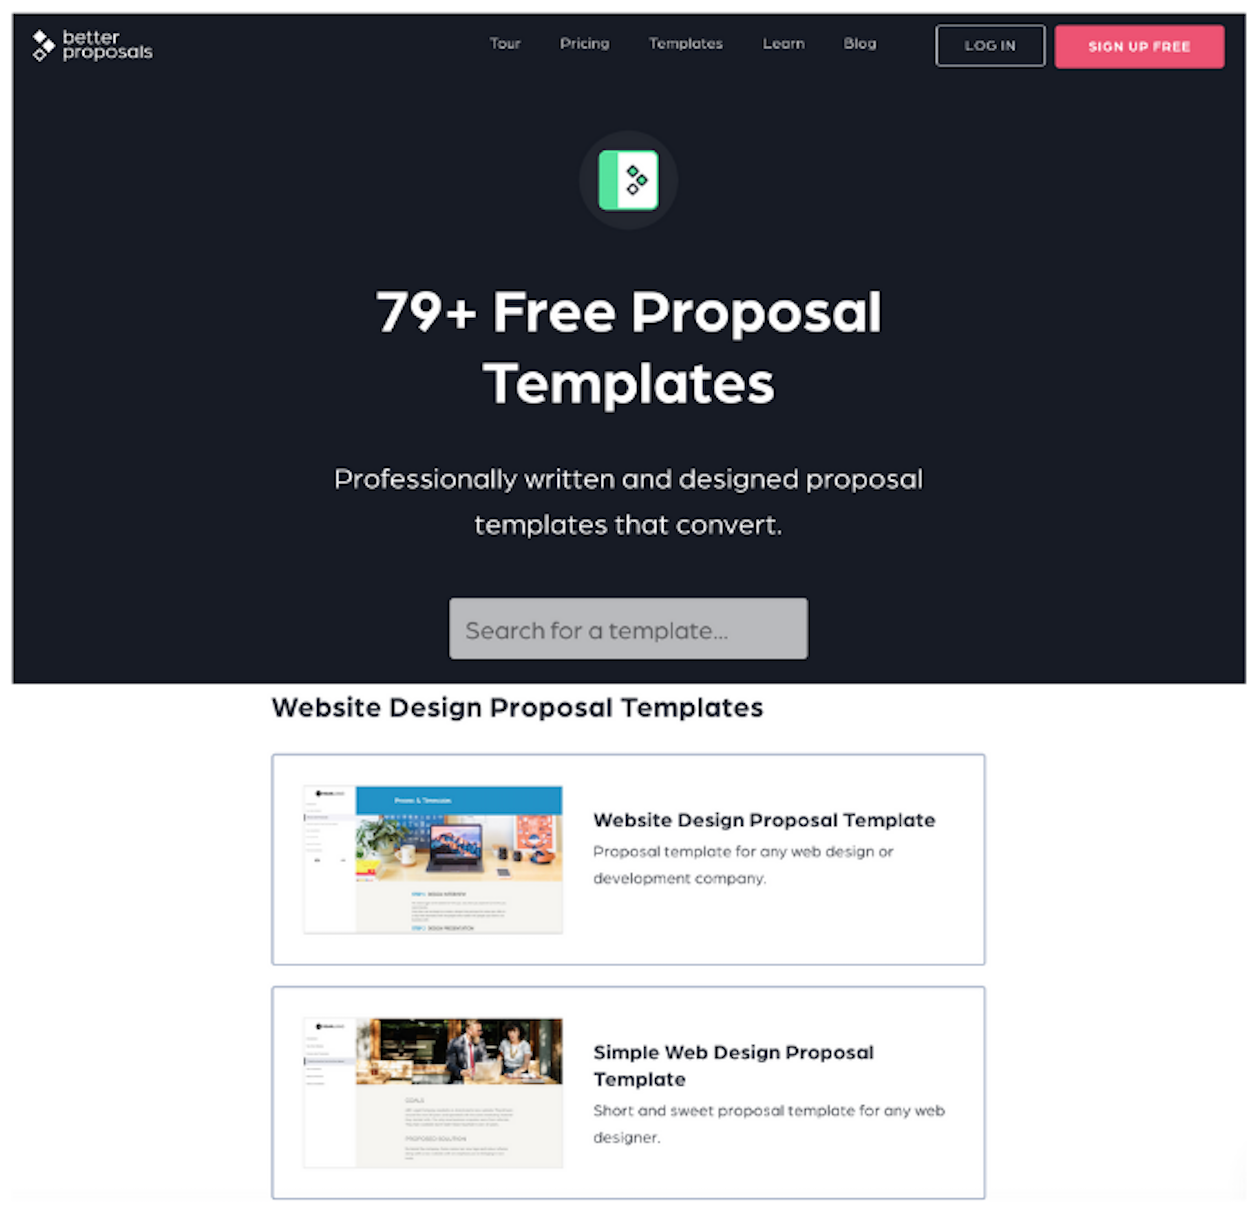 Proposal Software for Marketing Agencies: Better Proposals